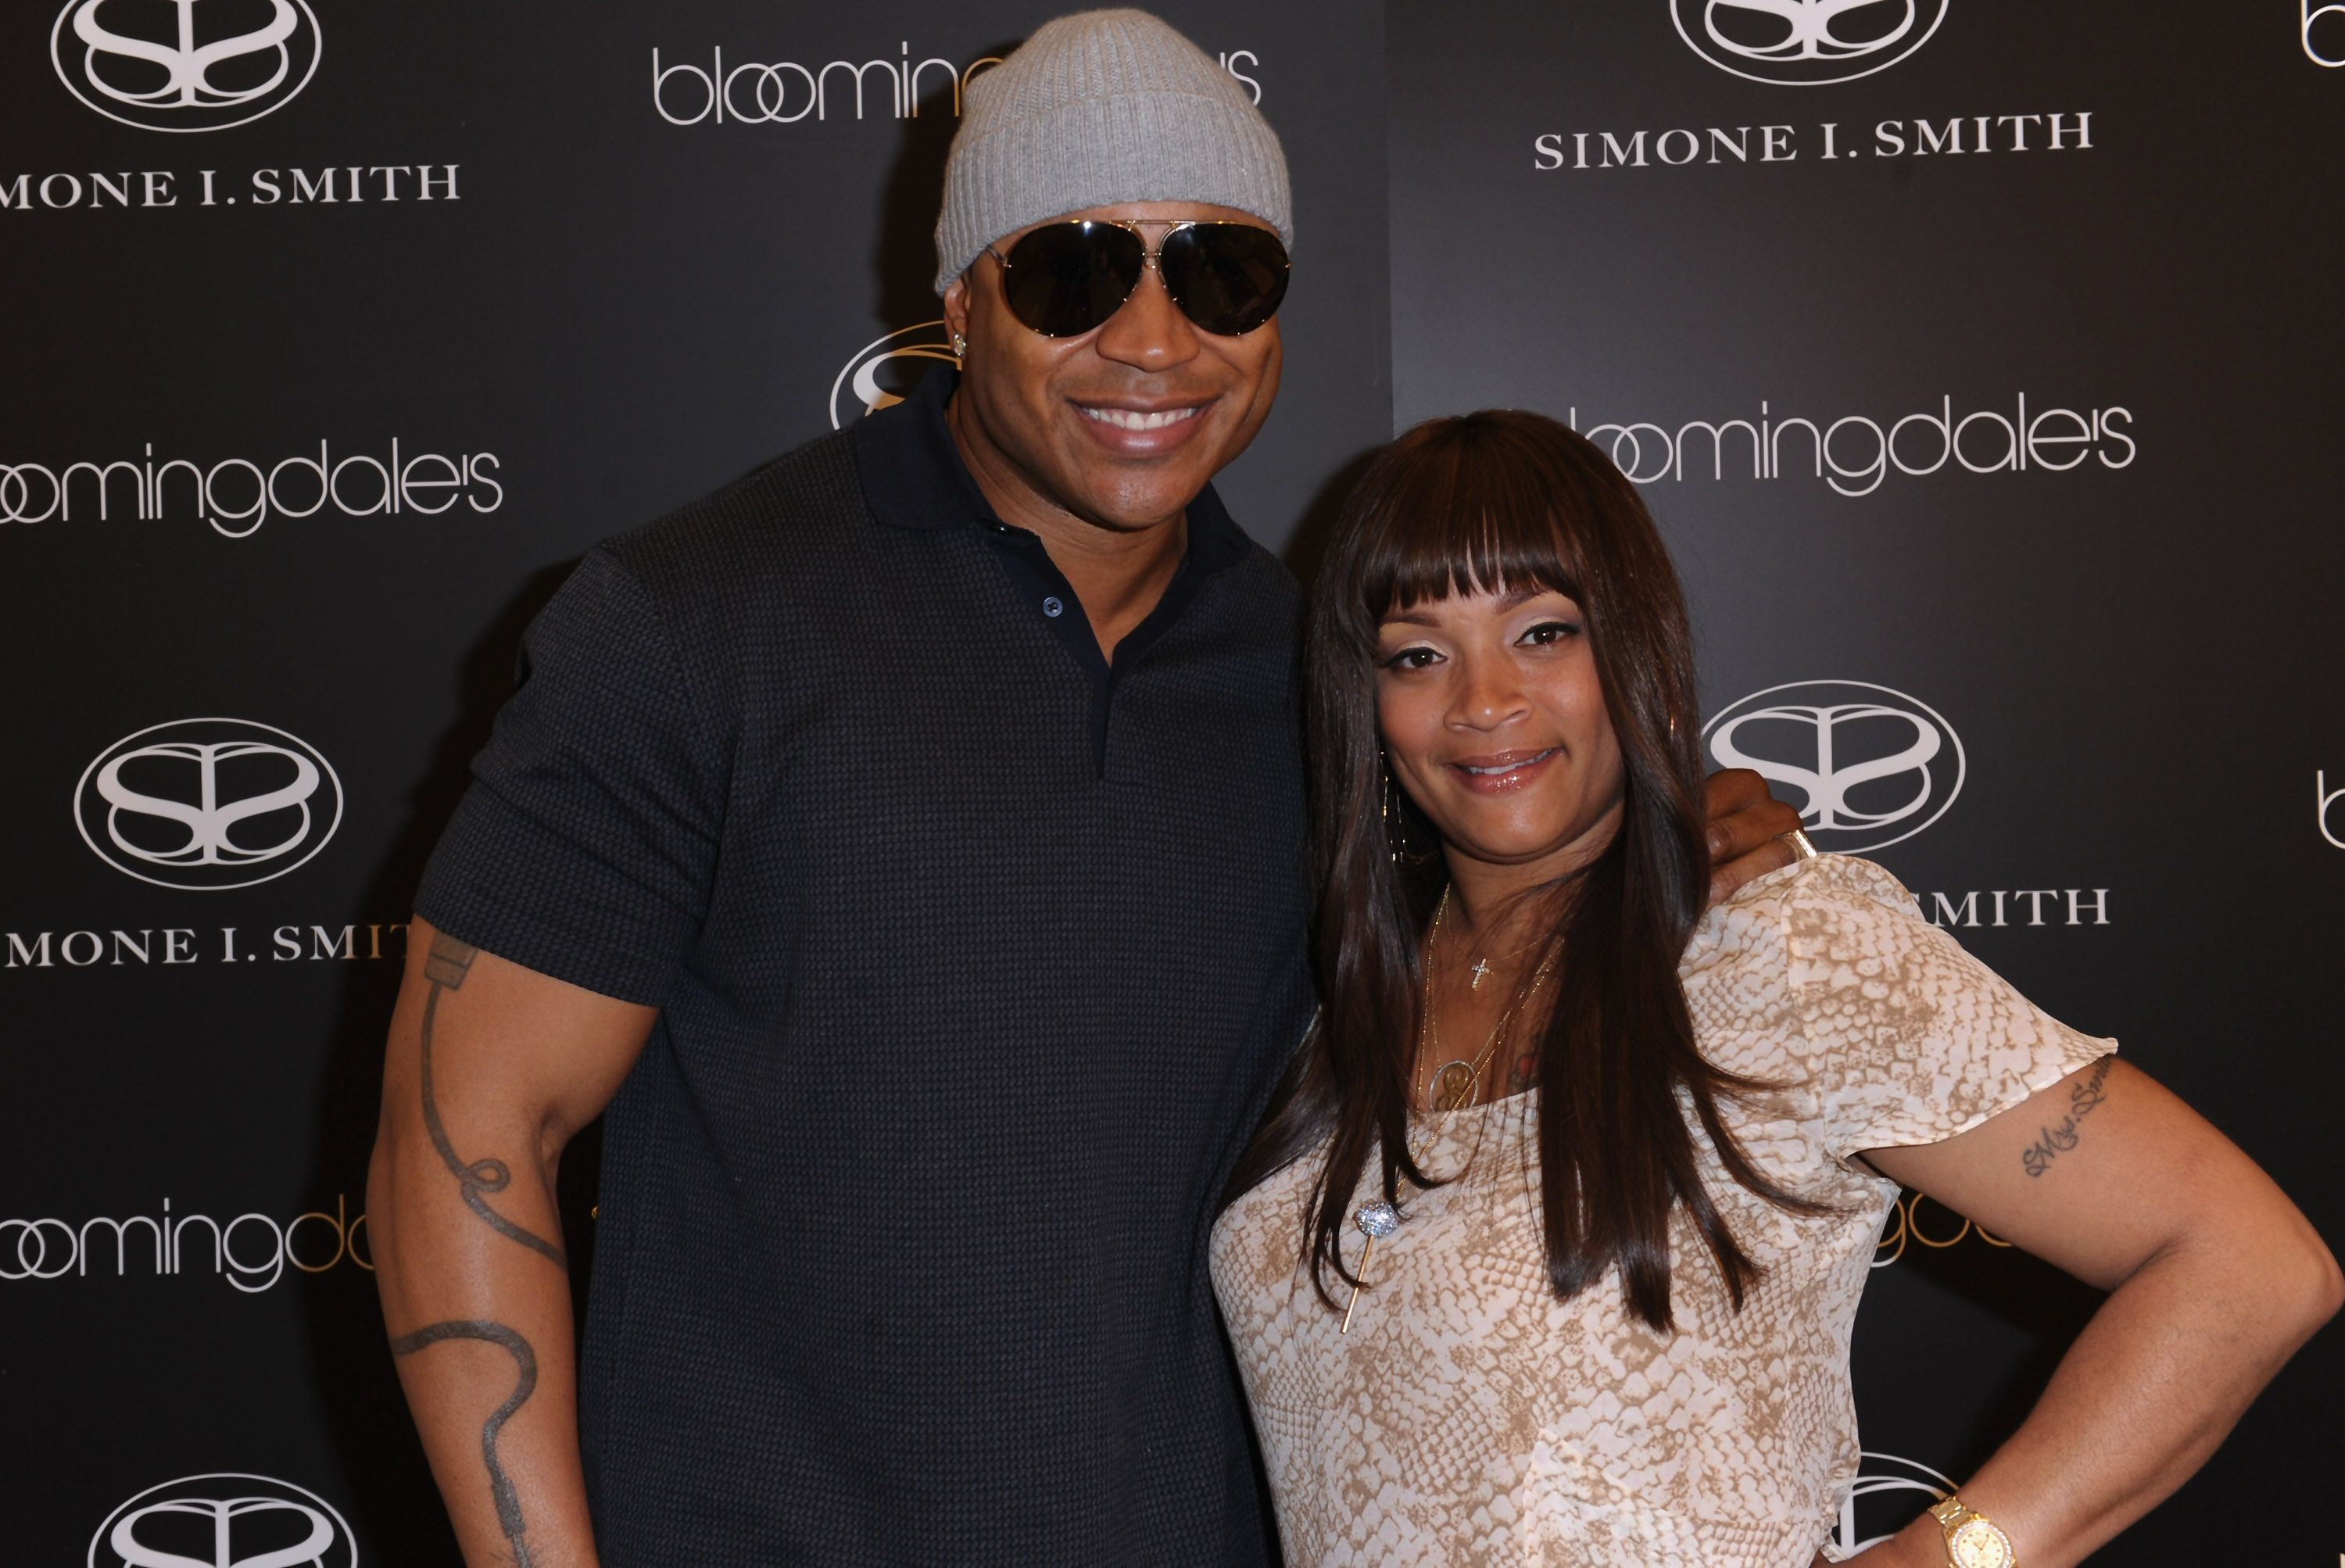 Actor LL Cool J joins his wife Simone I. Smith for her personal appearance at Bloomingdale's on May 12, 2011. | Source: Getty Images